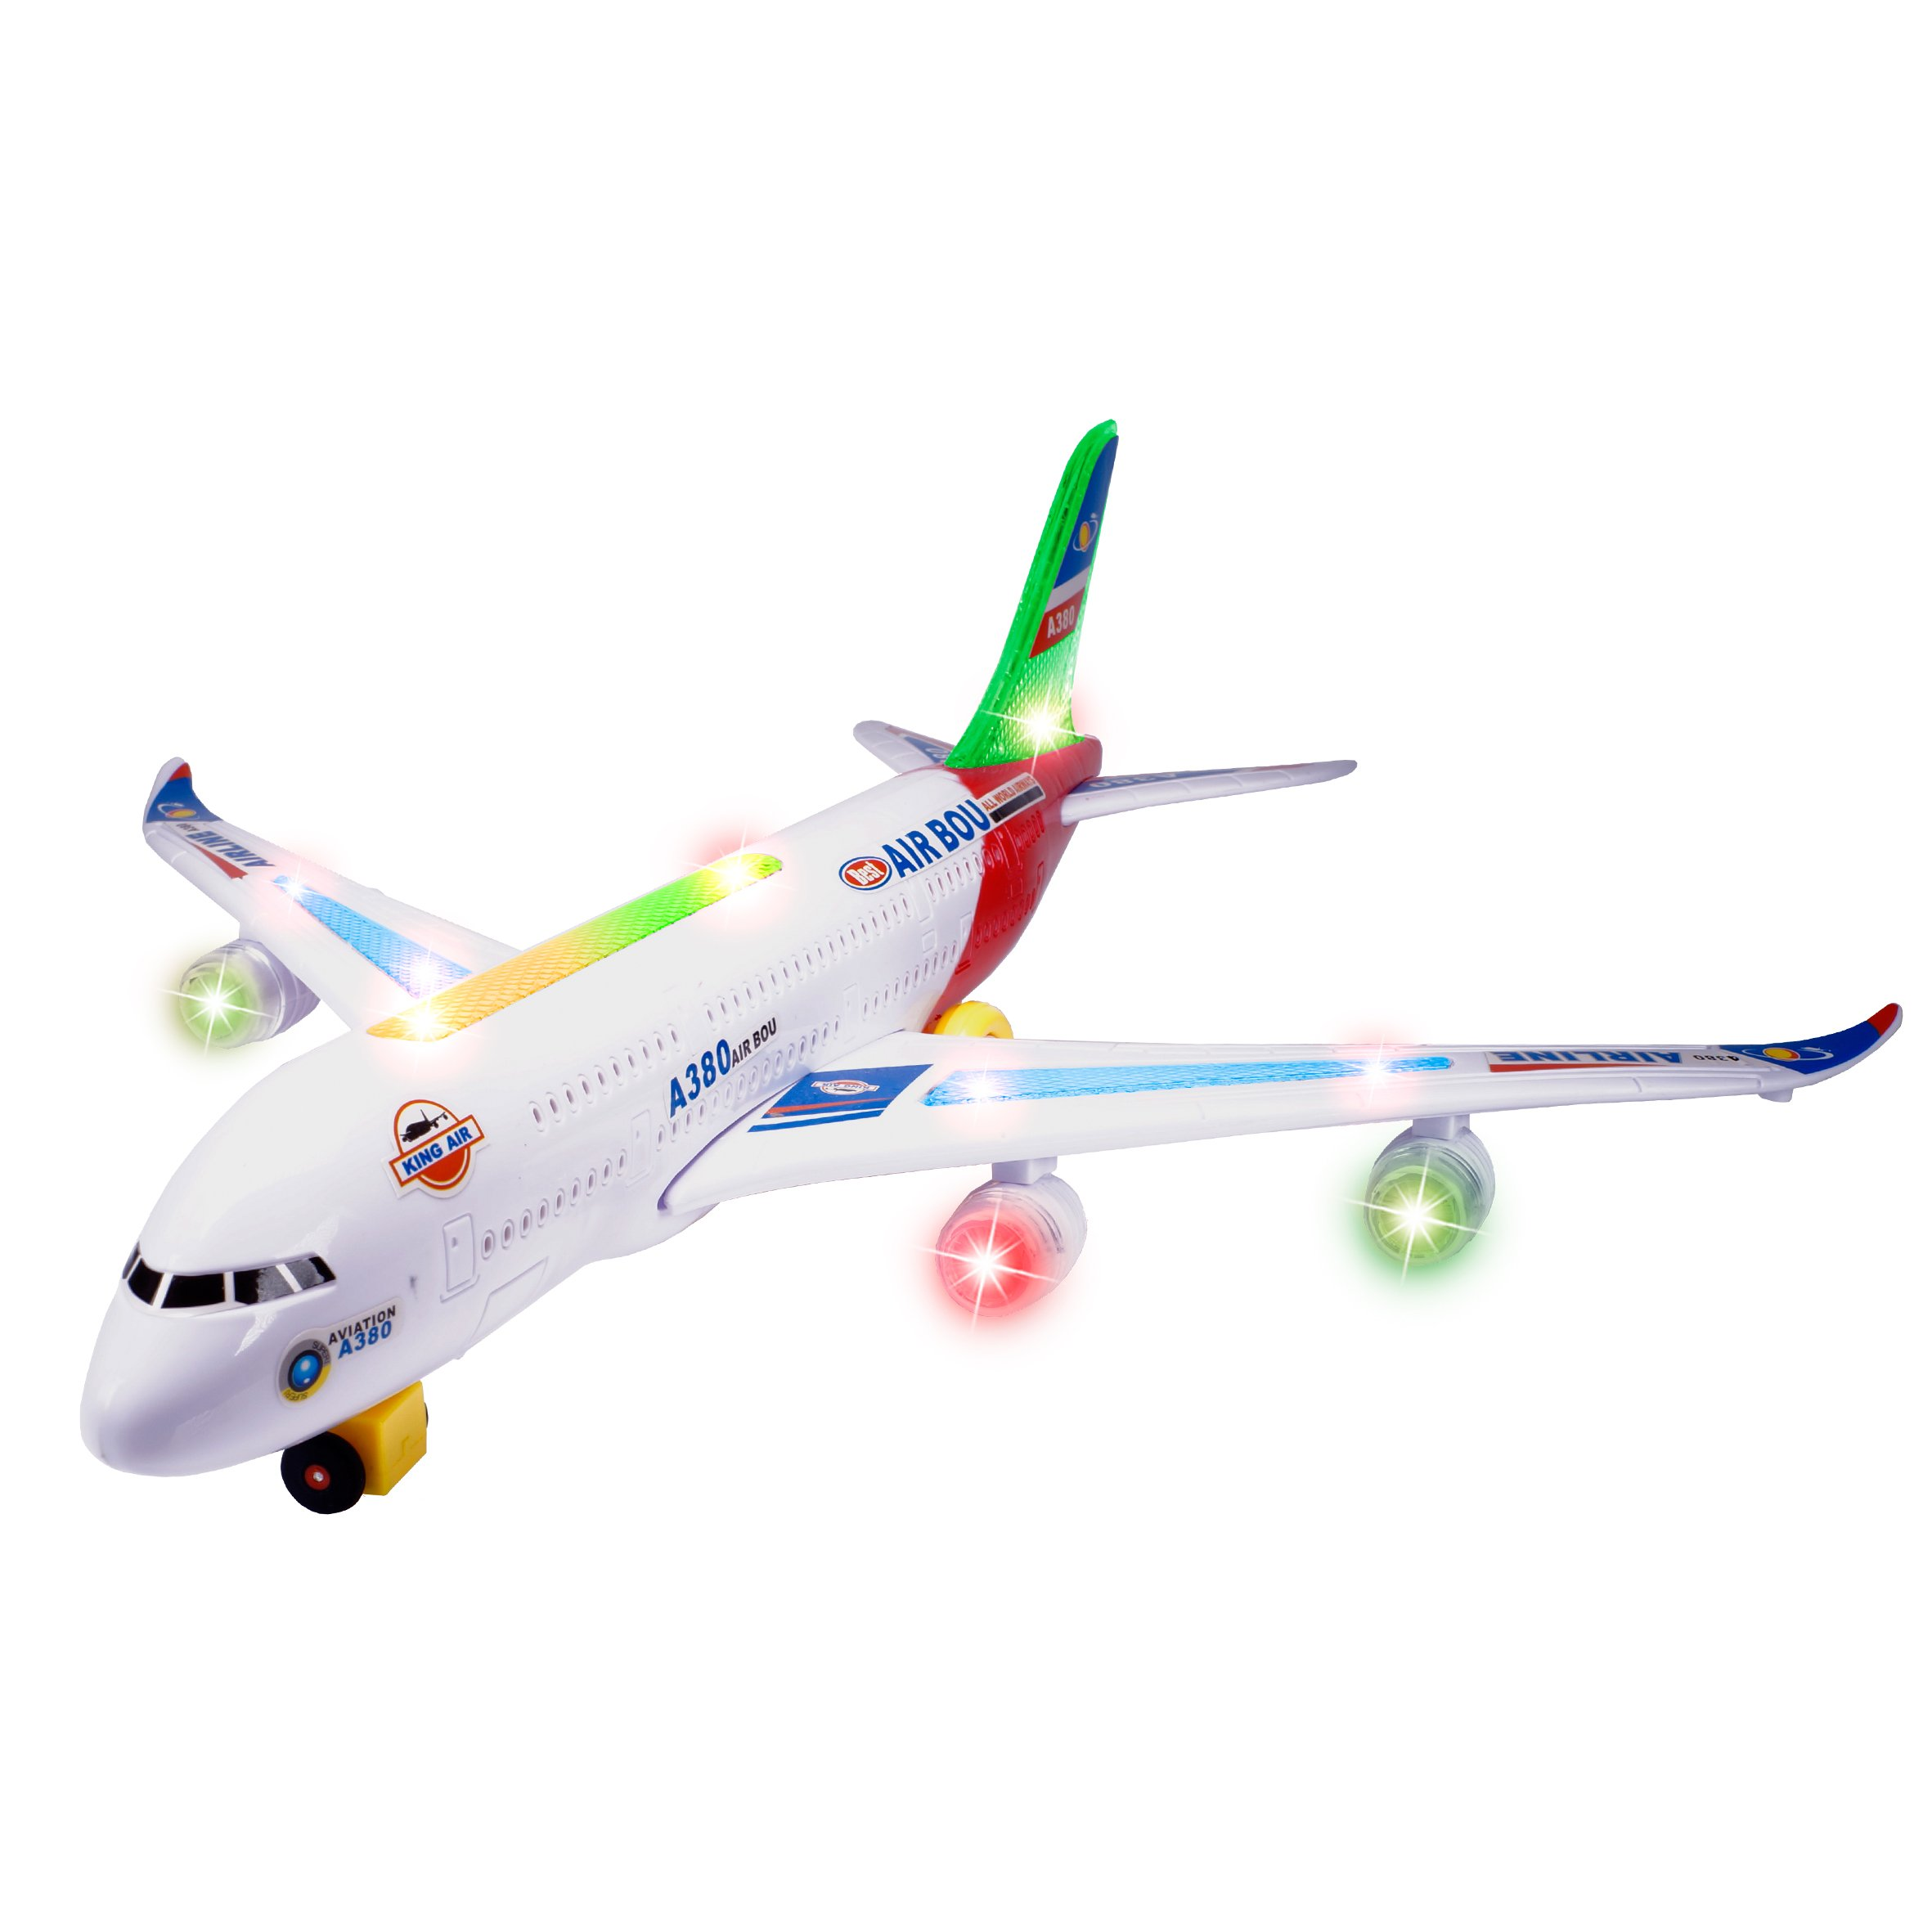 Airplane toys for toddlers kids awesome toy 2 3 4 year old boy with ...